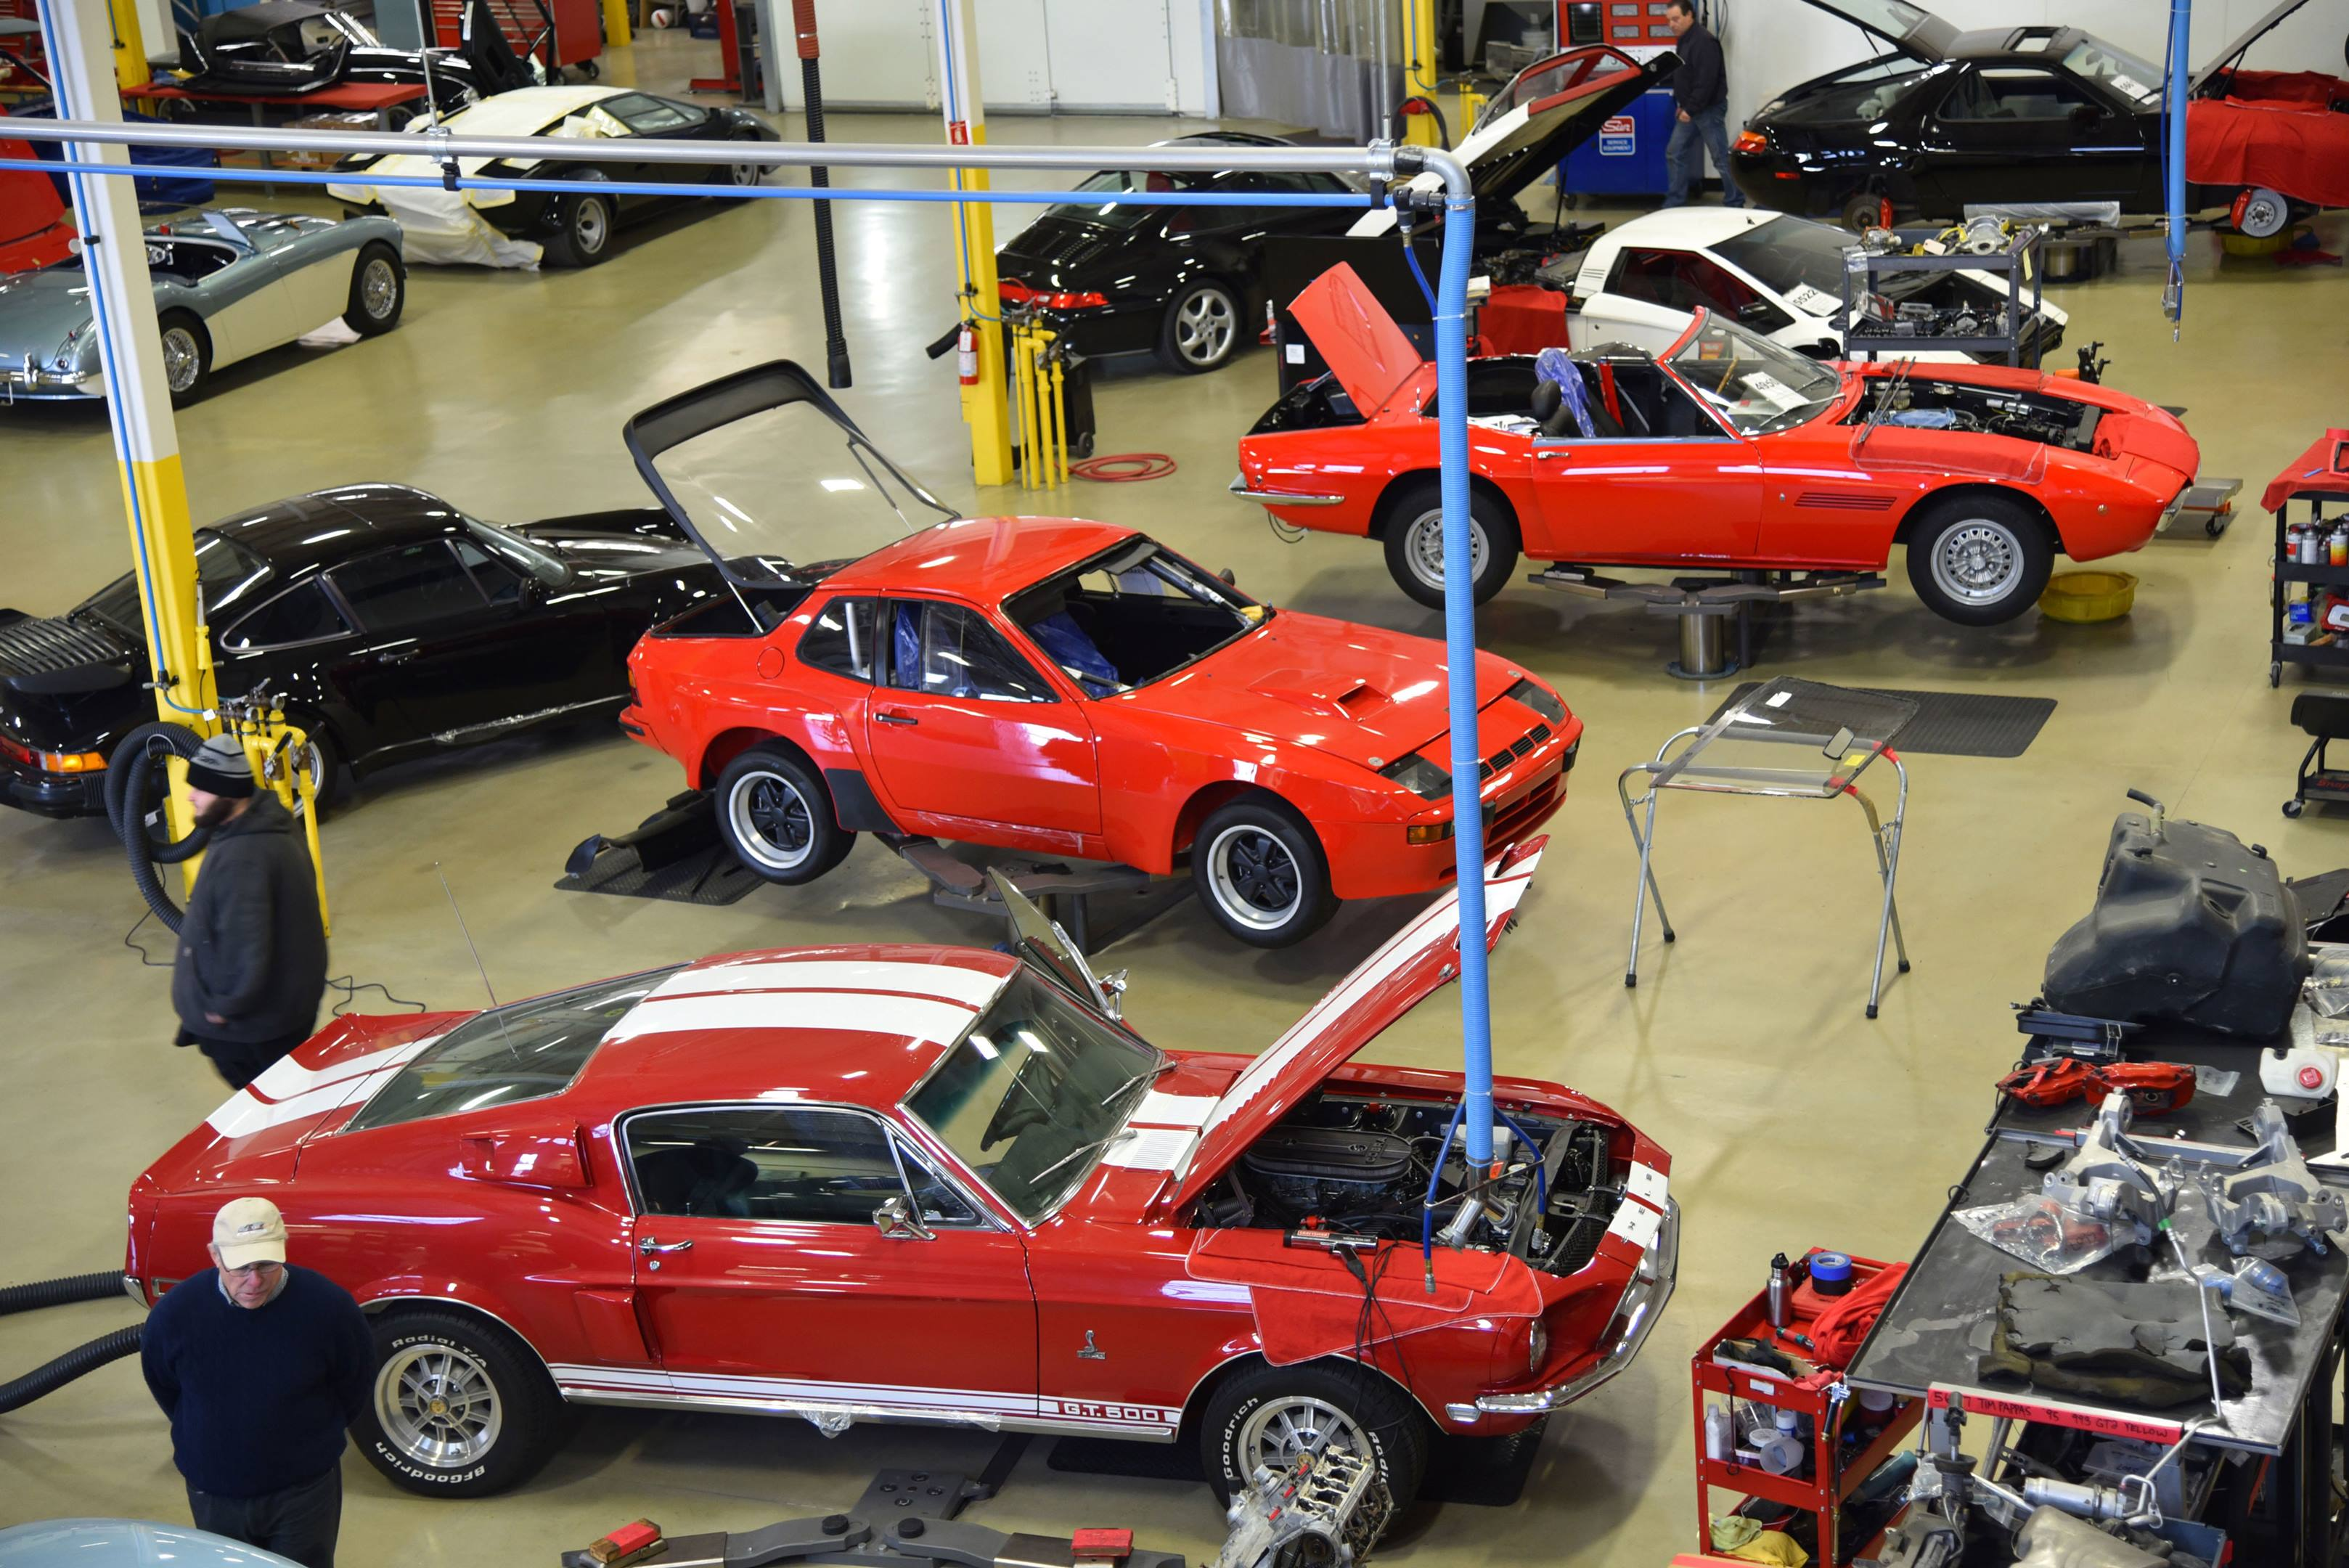 Canepa garage with Mustang